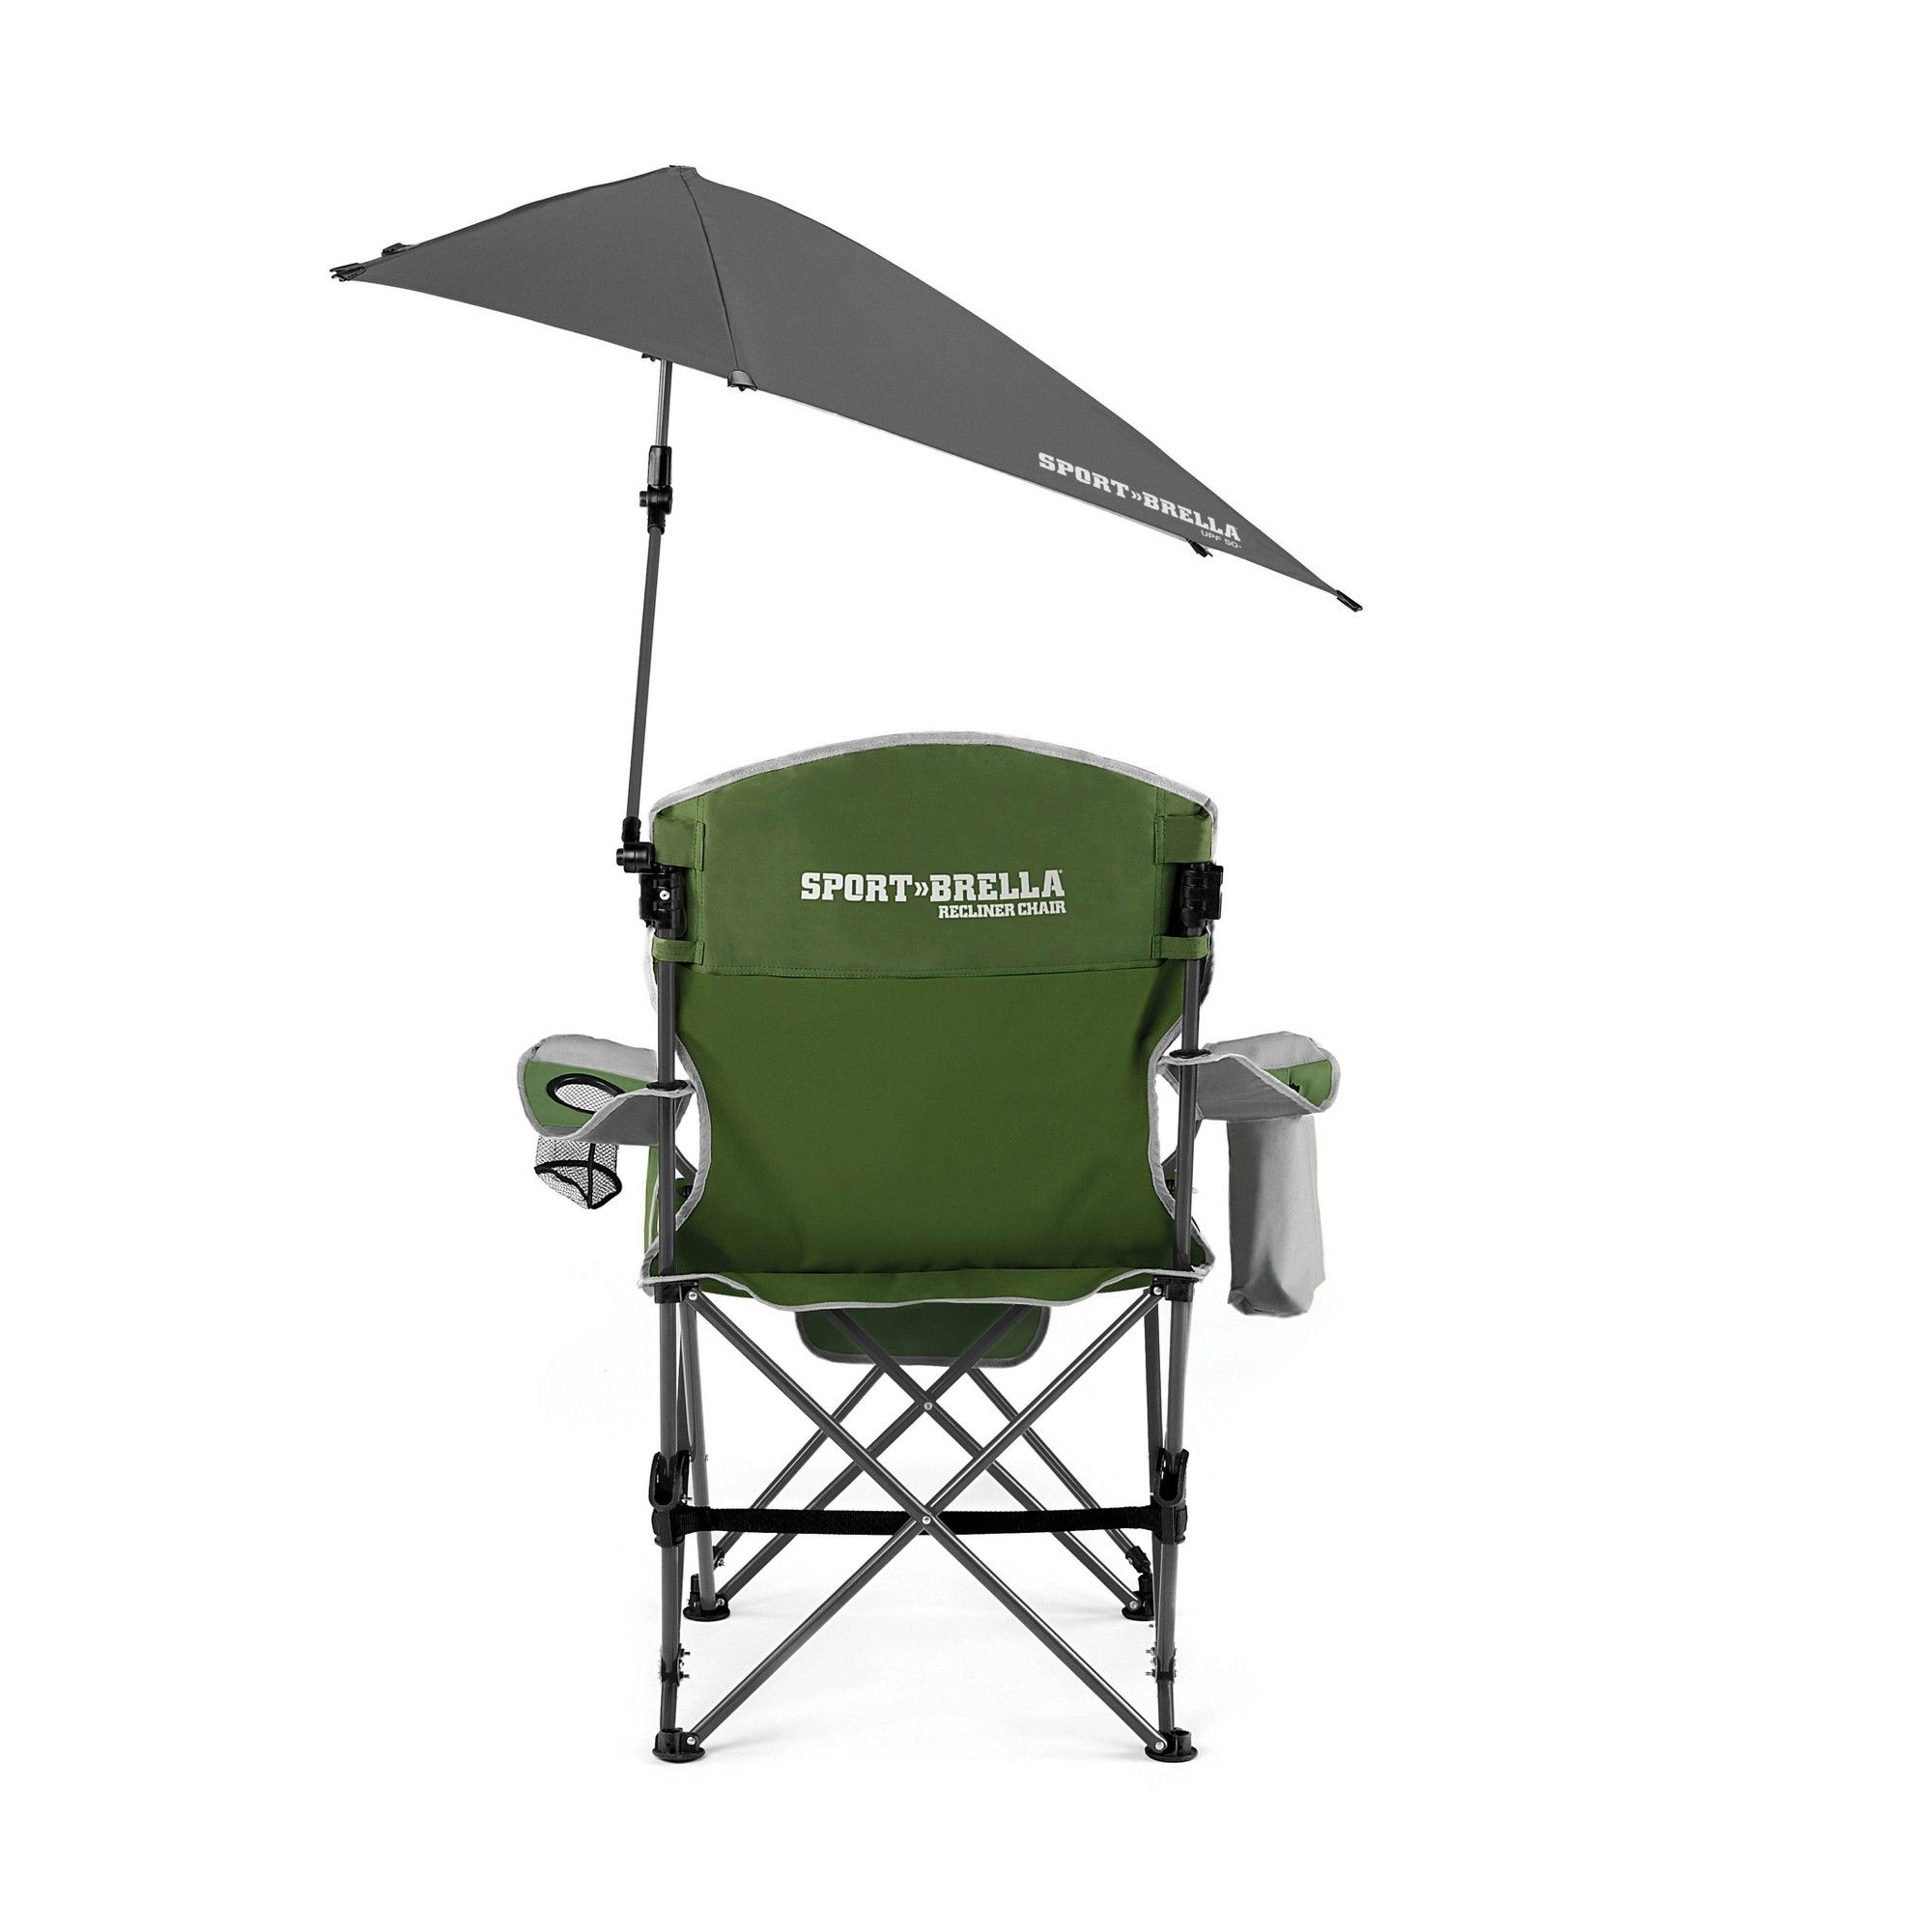 Fine Sport Brella Portable Recliner Chair Moss Green Green Gmtry Best Dining Table And Chair Ideas Images Gmtryco